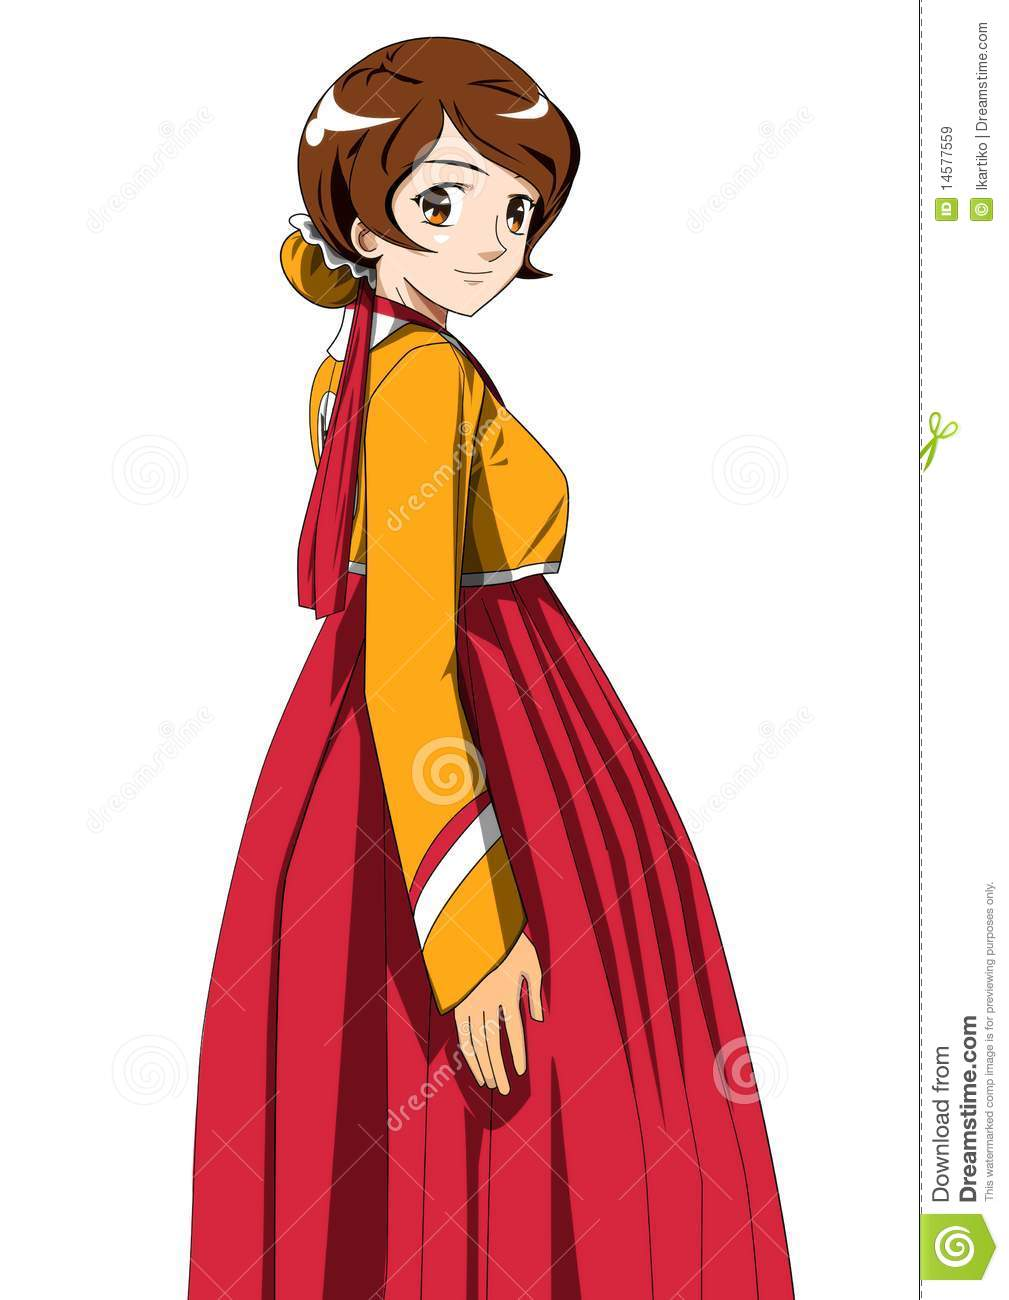 An original cartoon character in her favourite Hanbok (Korean dress).